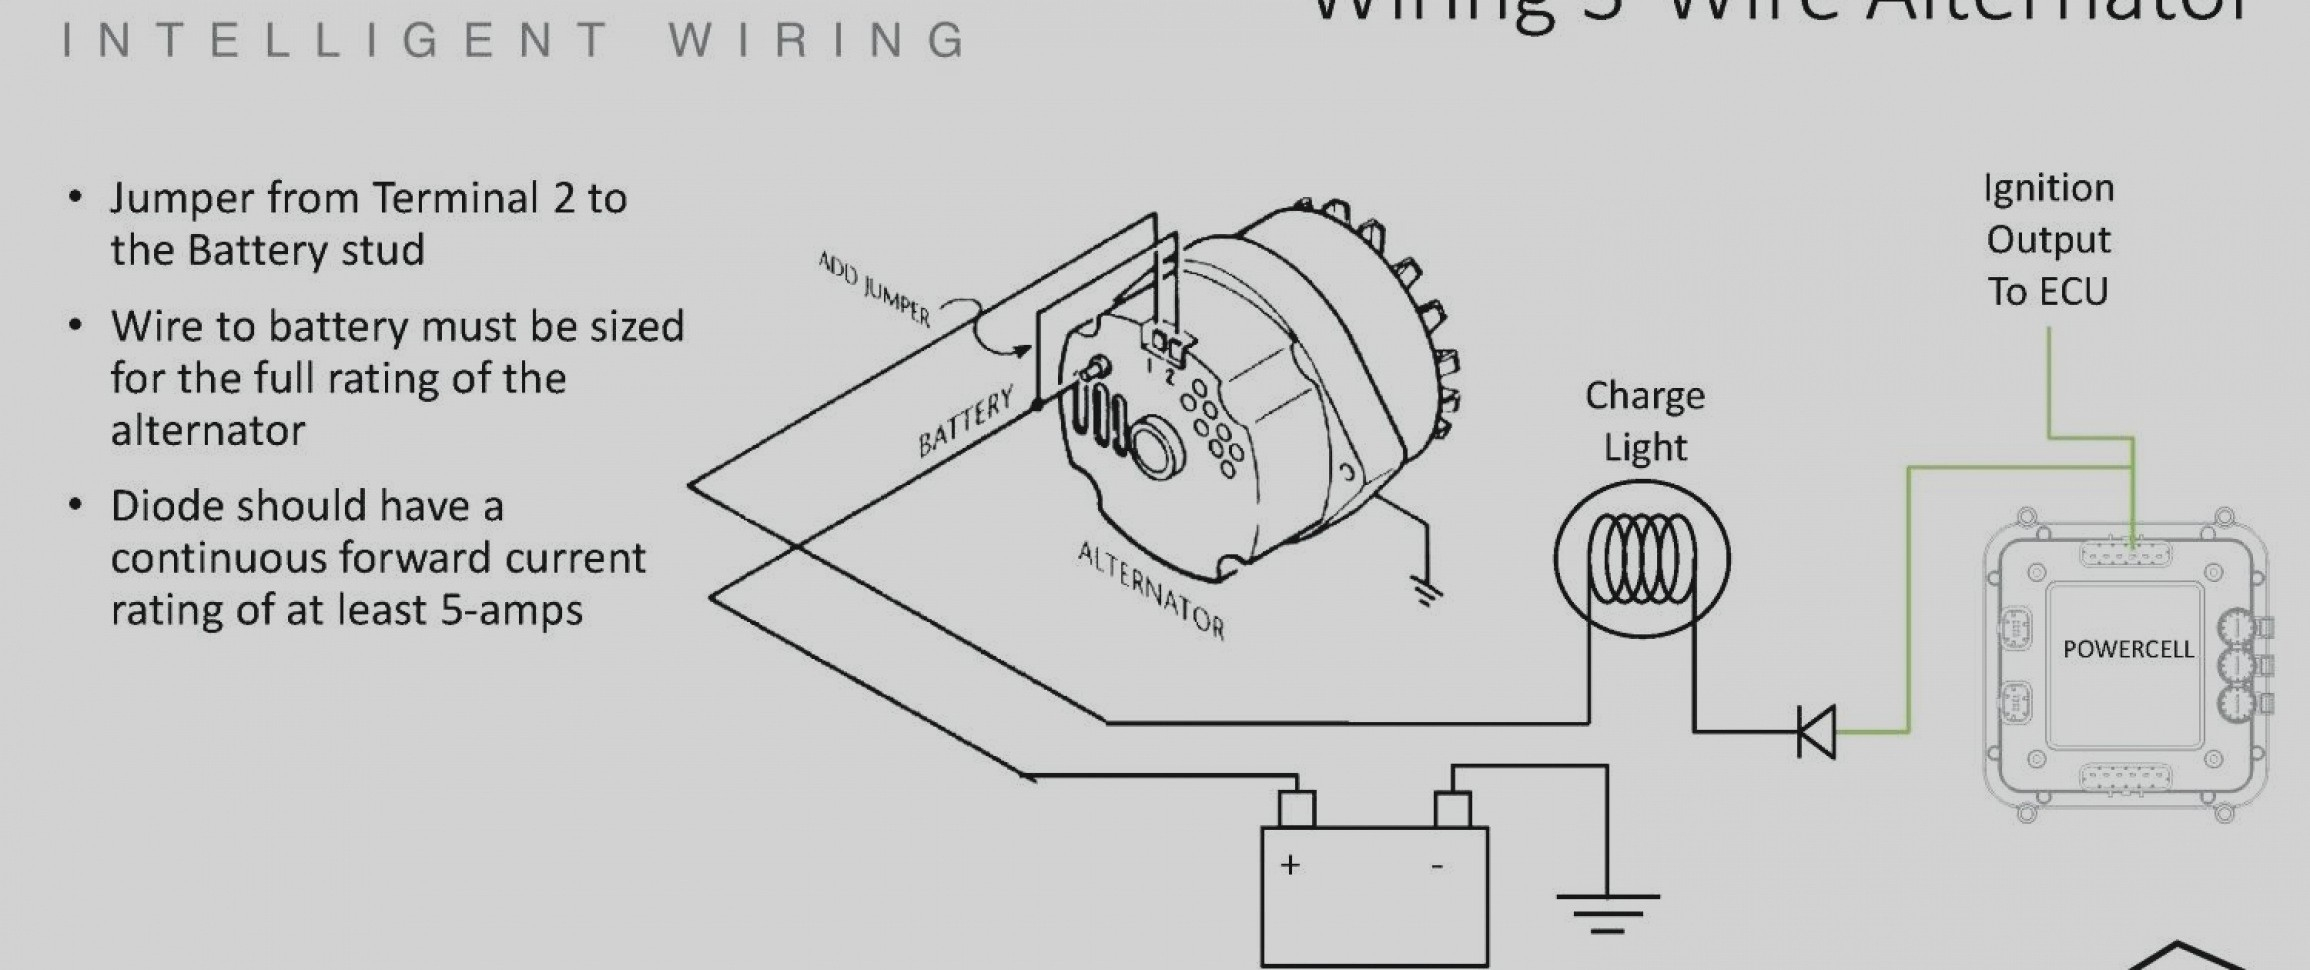 Chevy 350 Alternator Voltage Regulator Wiring Diagram - Wiring Diagrams - Gm Alternator Wiring Diagram